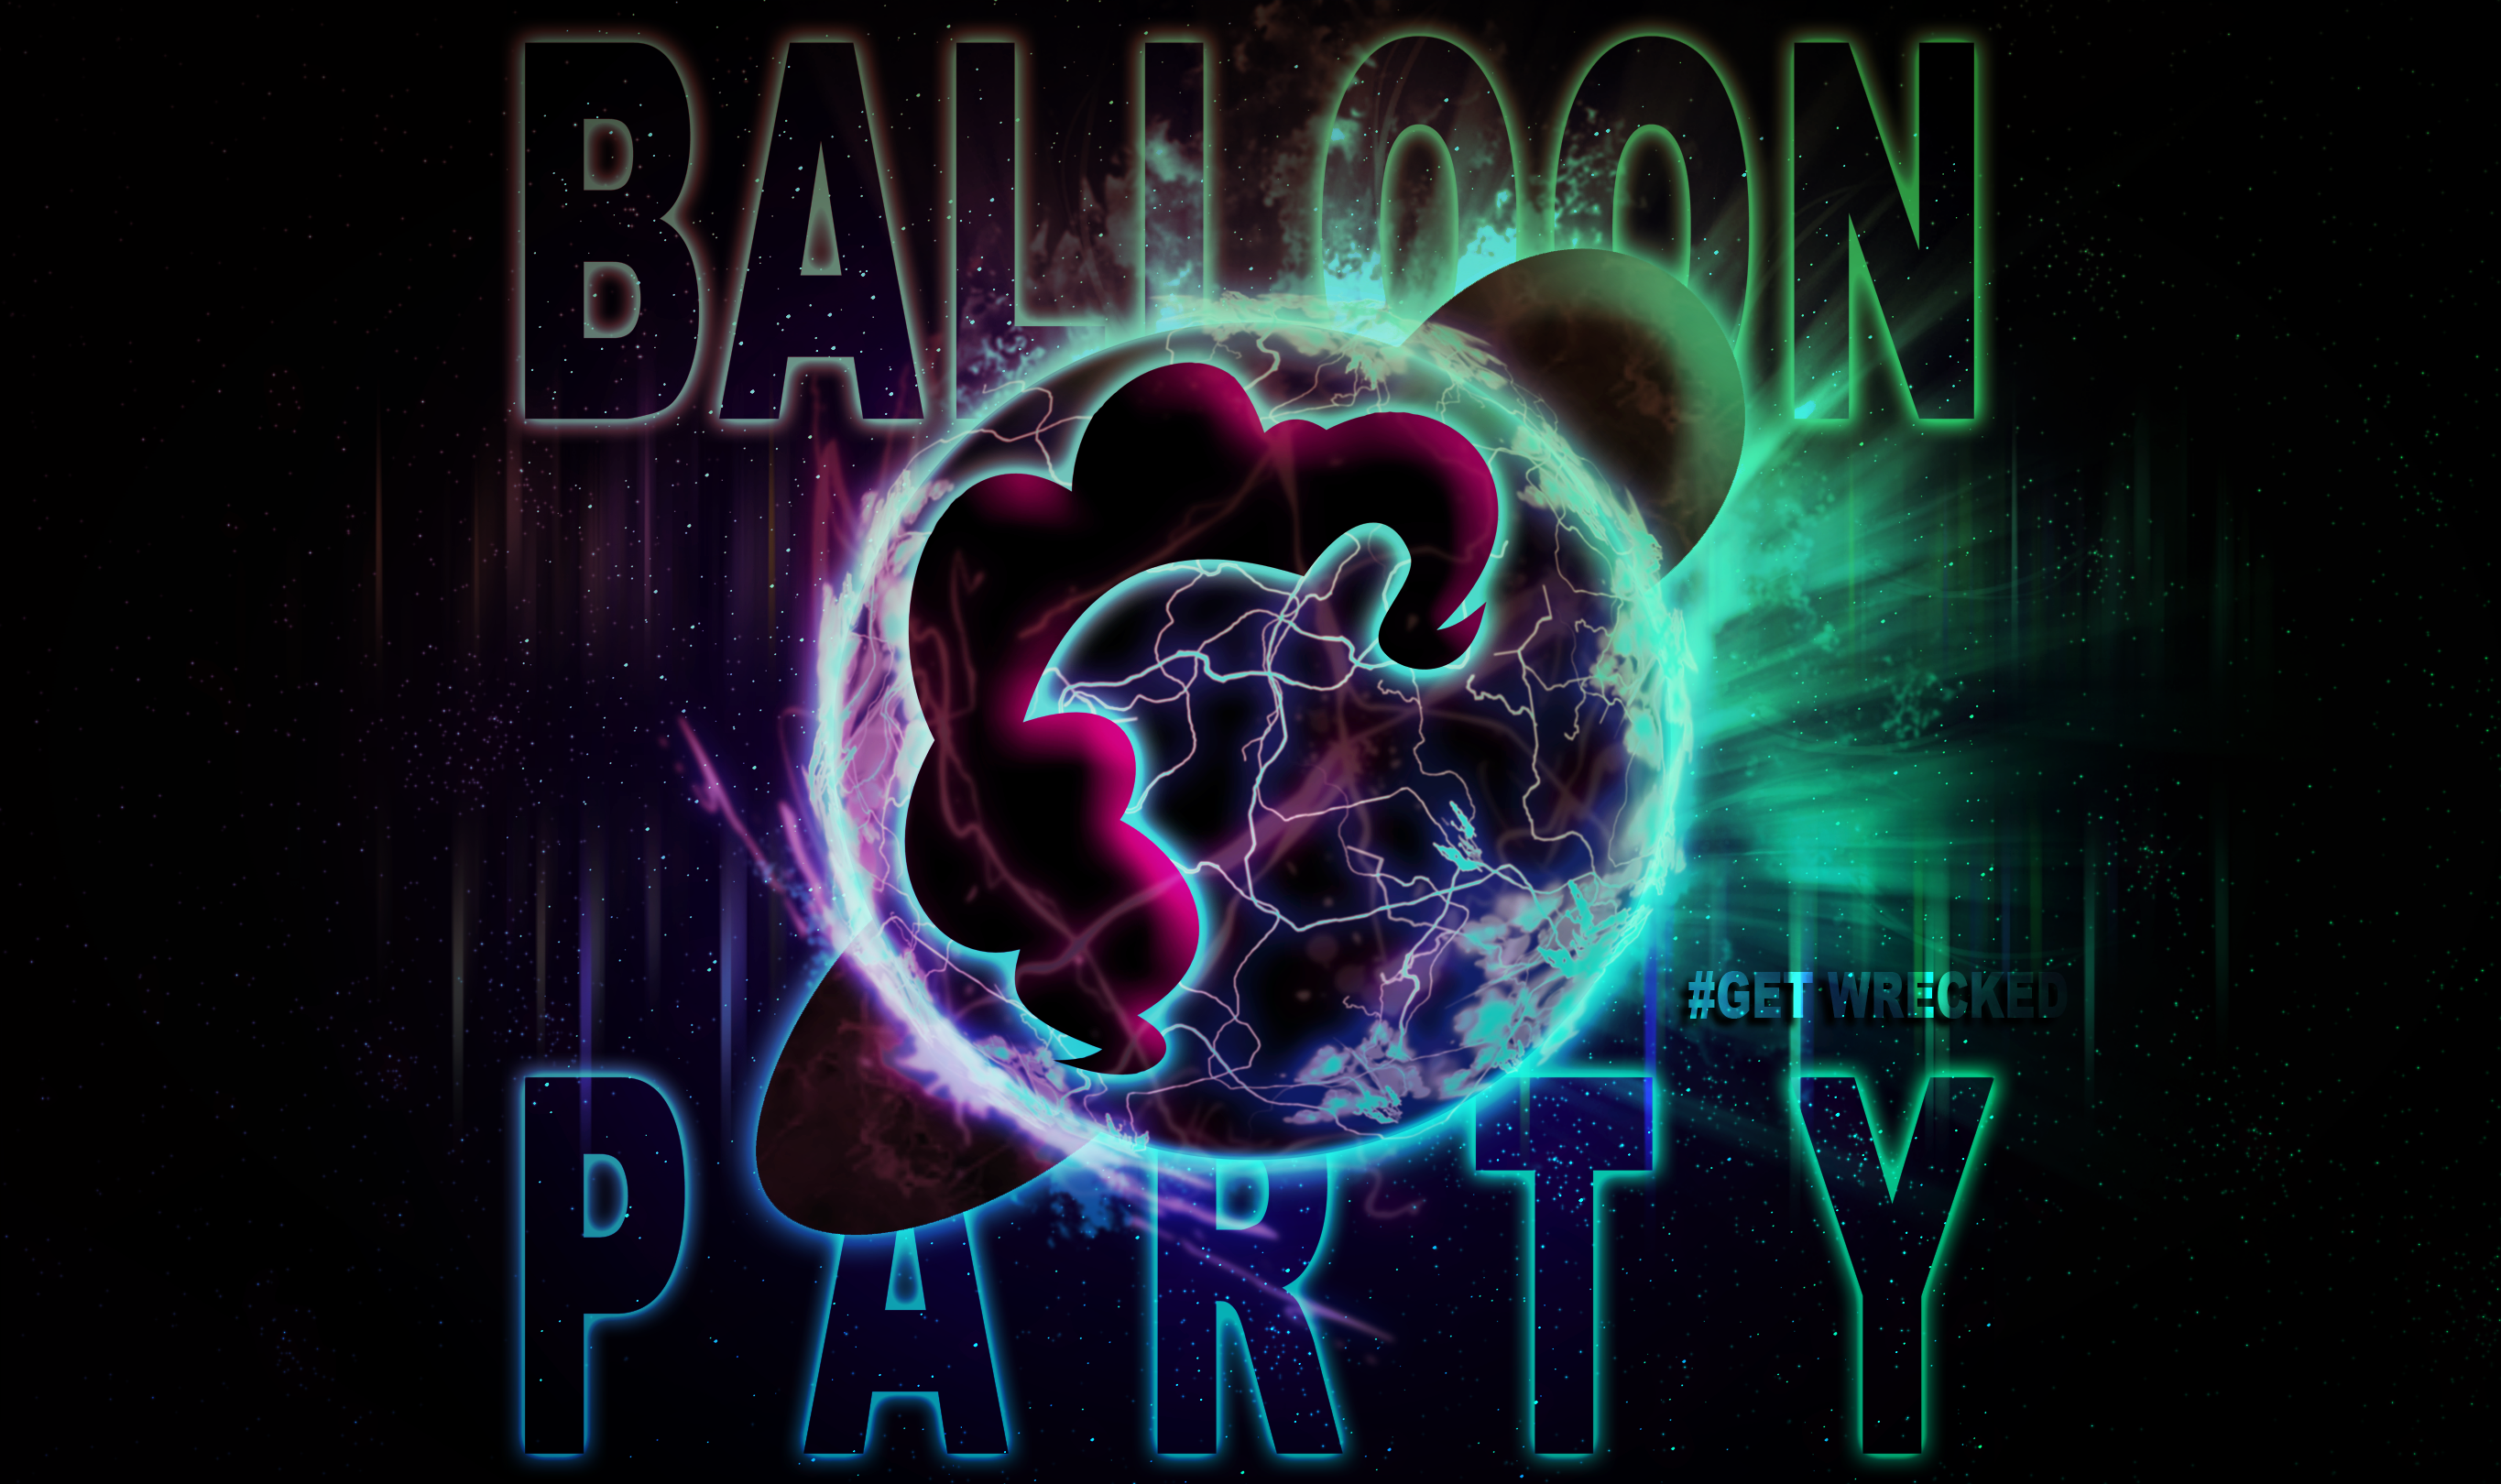 [Balloon Party] Get Wrecked by Finaglerific